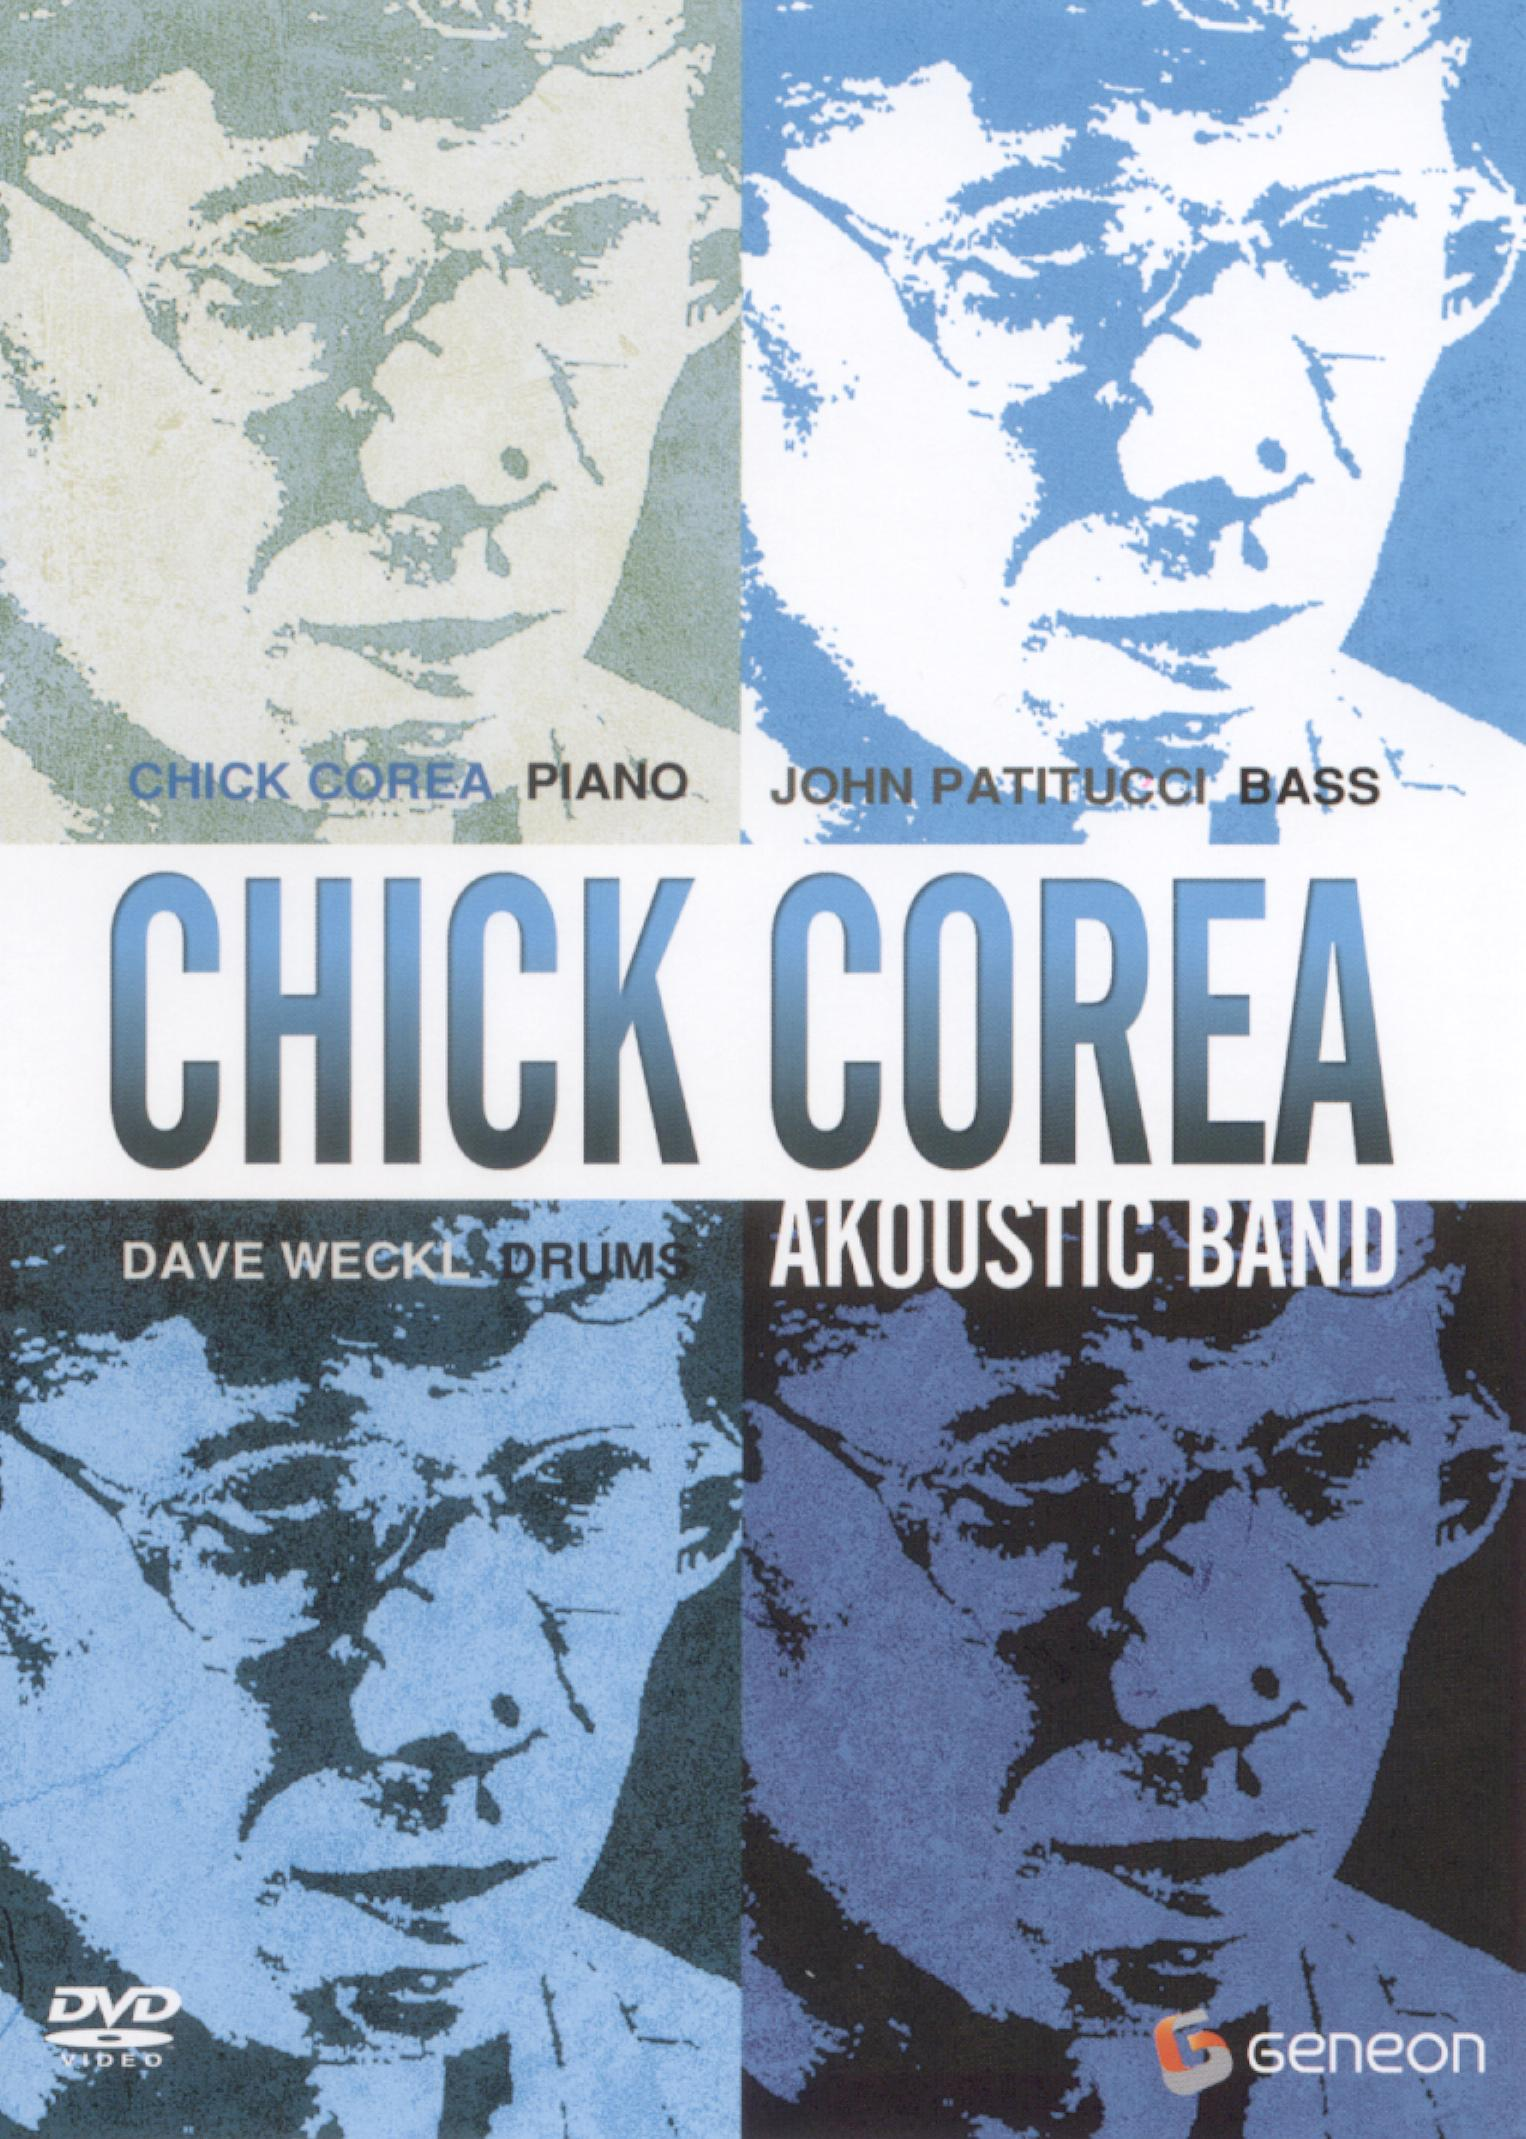 Chick Corea Akoustic Band: Alive